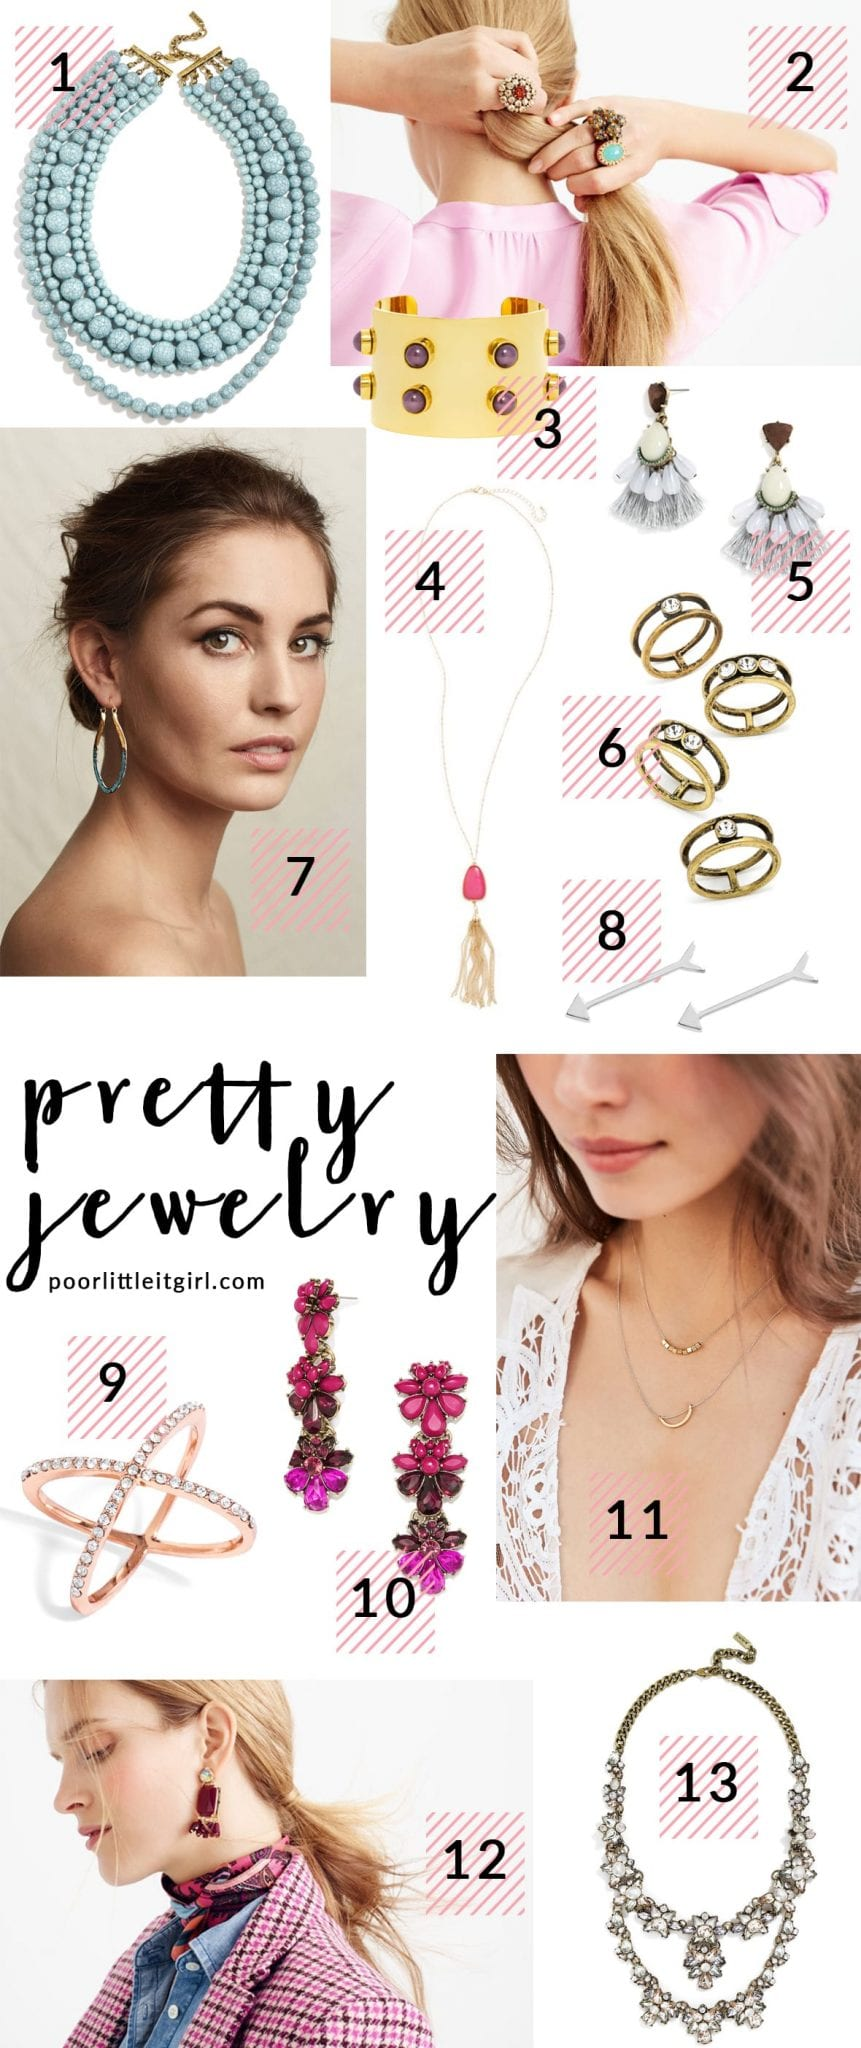 Poor Little It Girl - Pretty Jewelry - @poorlilitgirl